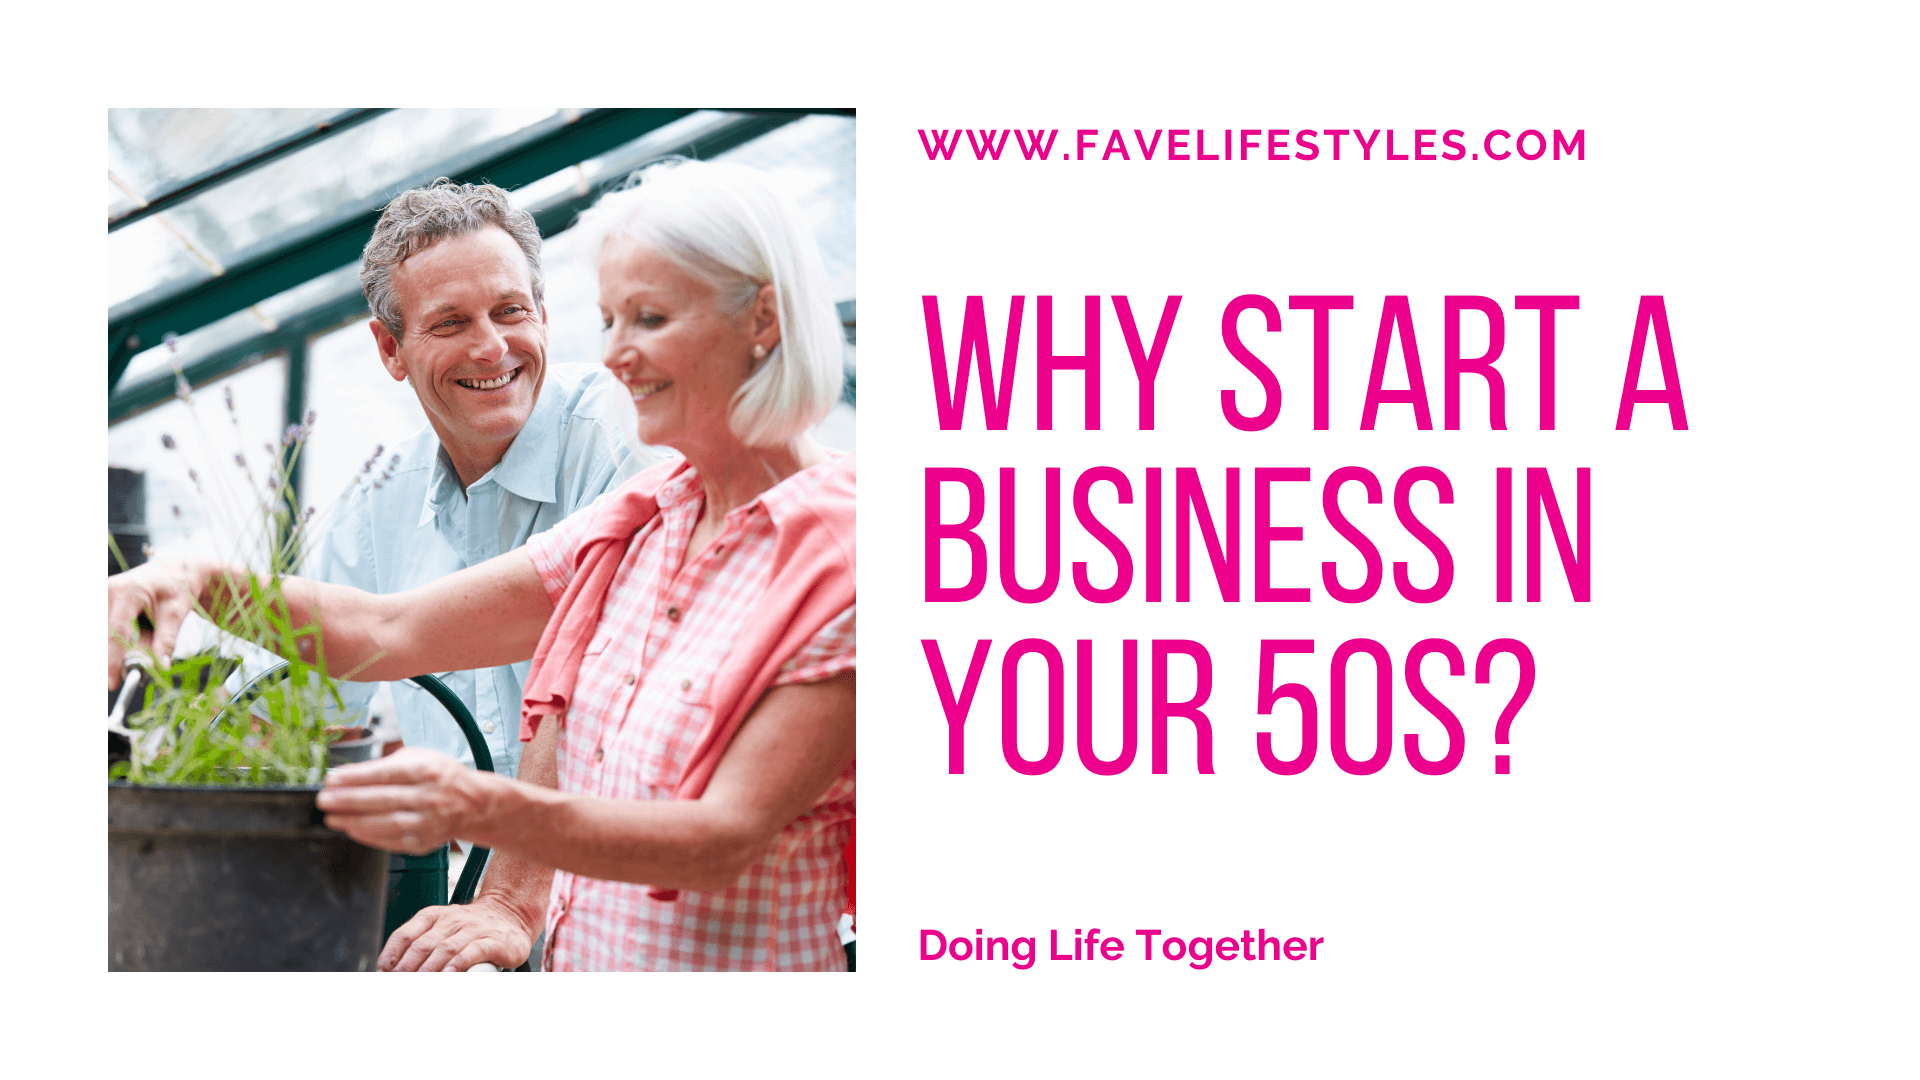 Why Start A Business in Your 50's?